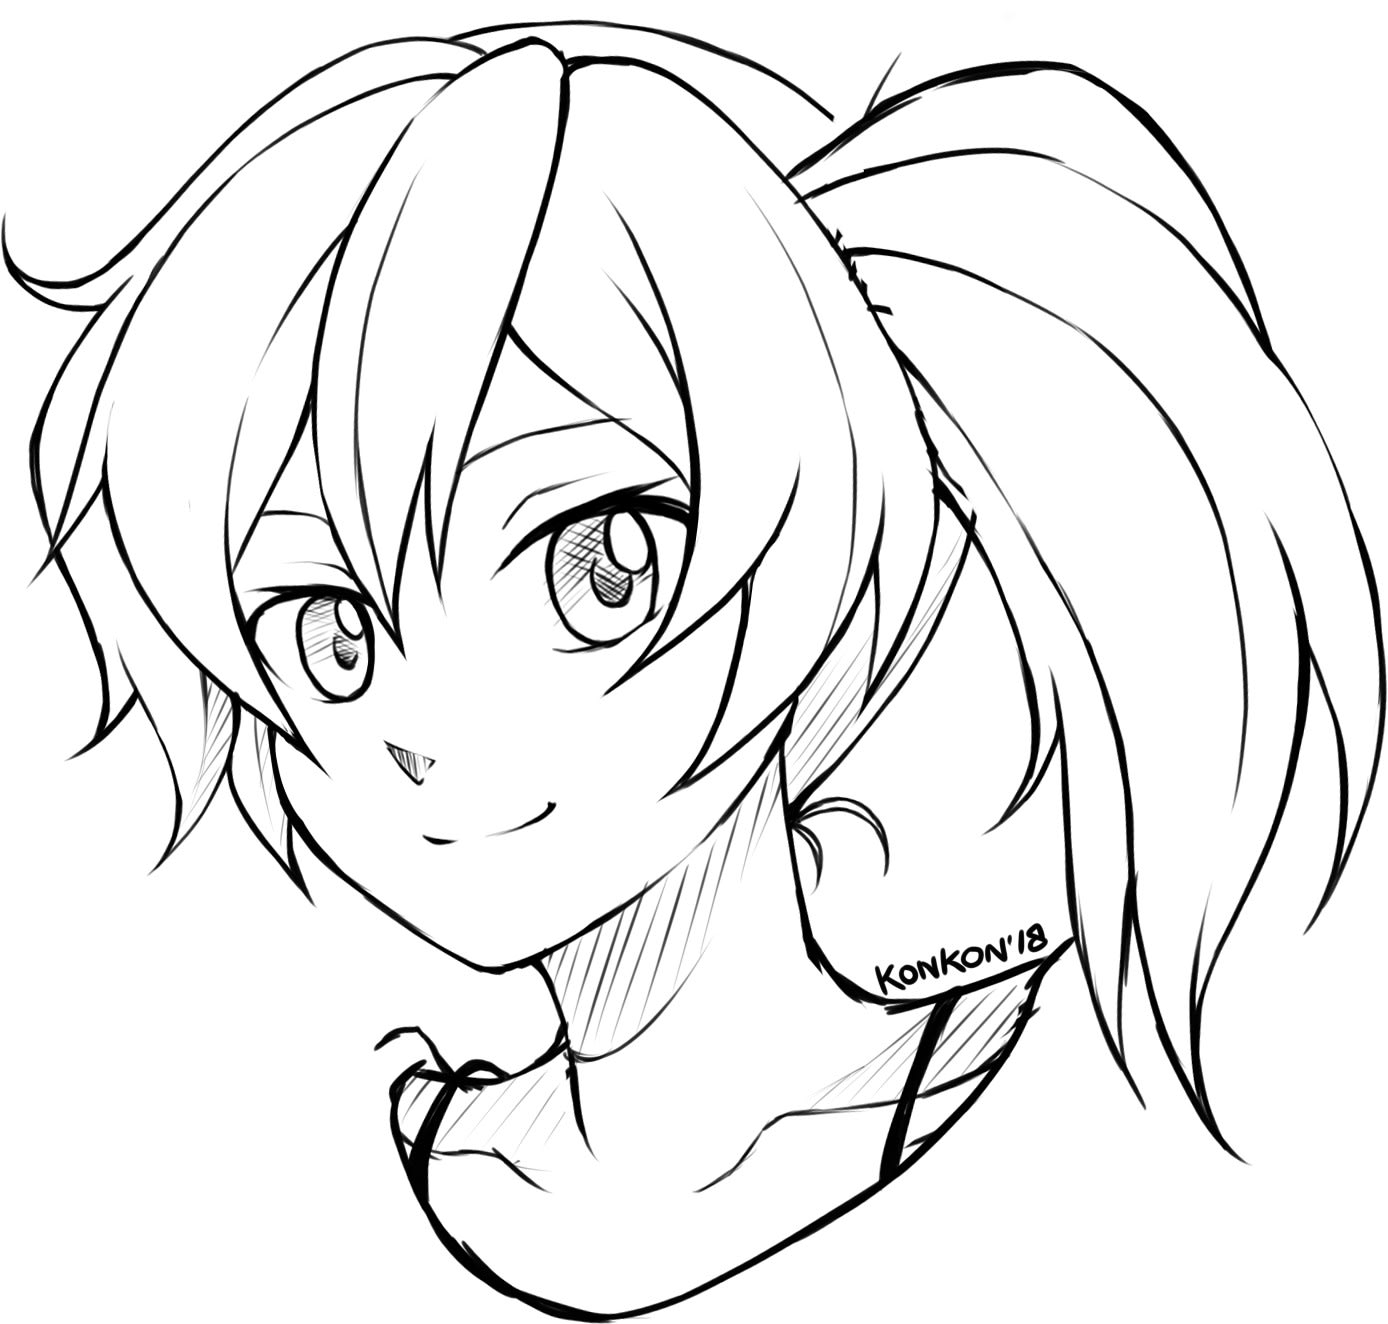 Draw anime style portrait sketch by Karrakon